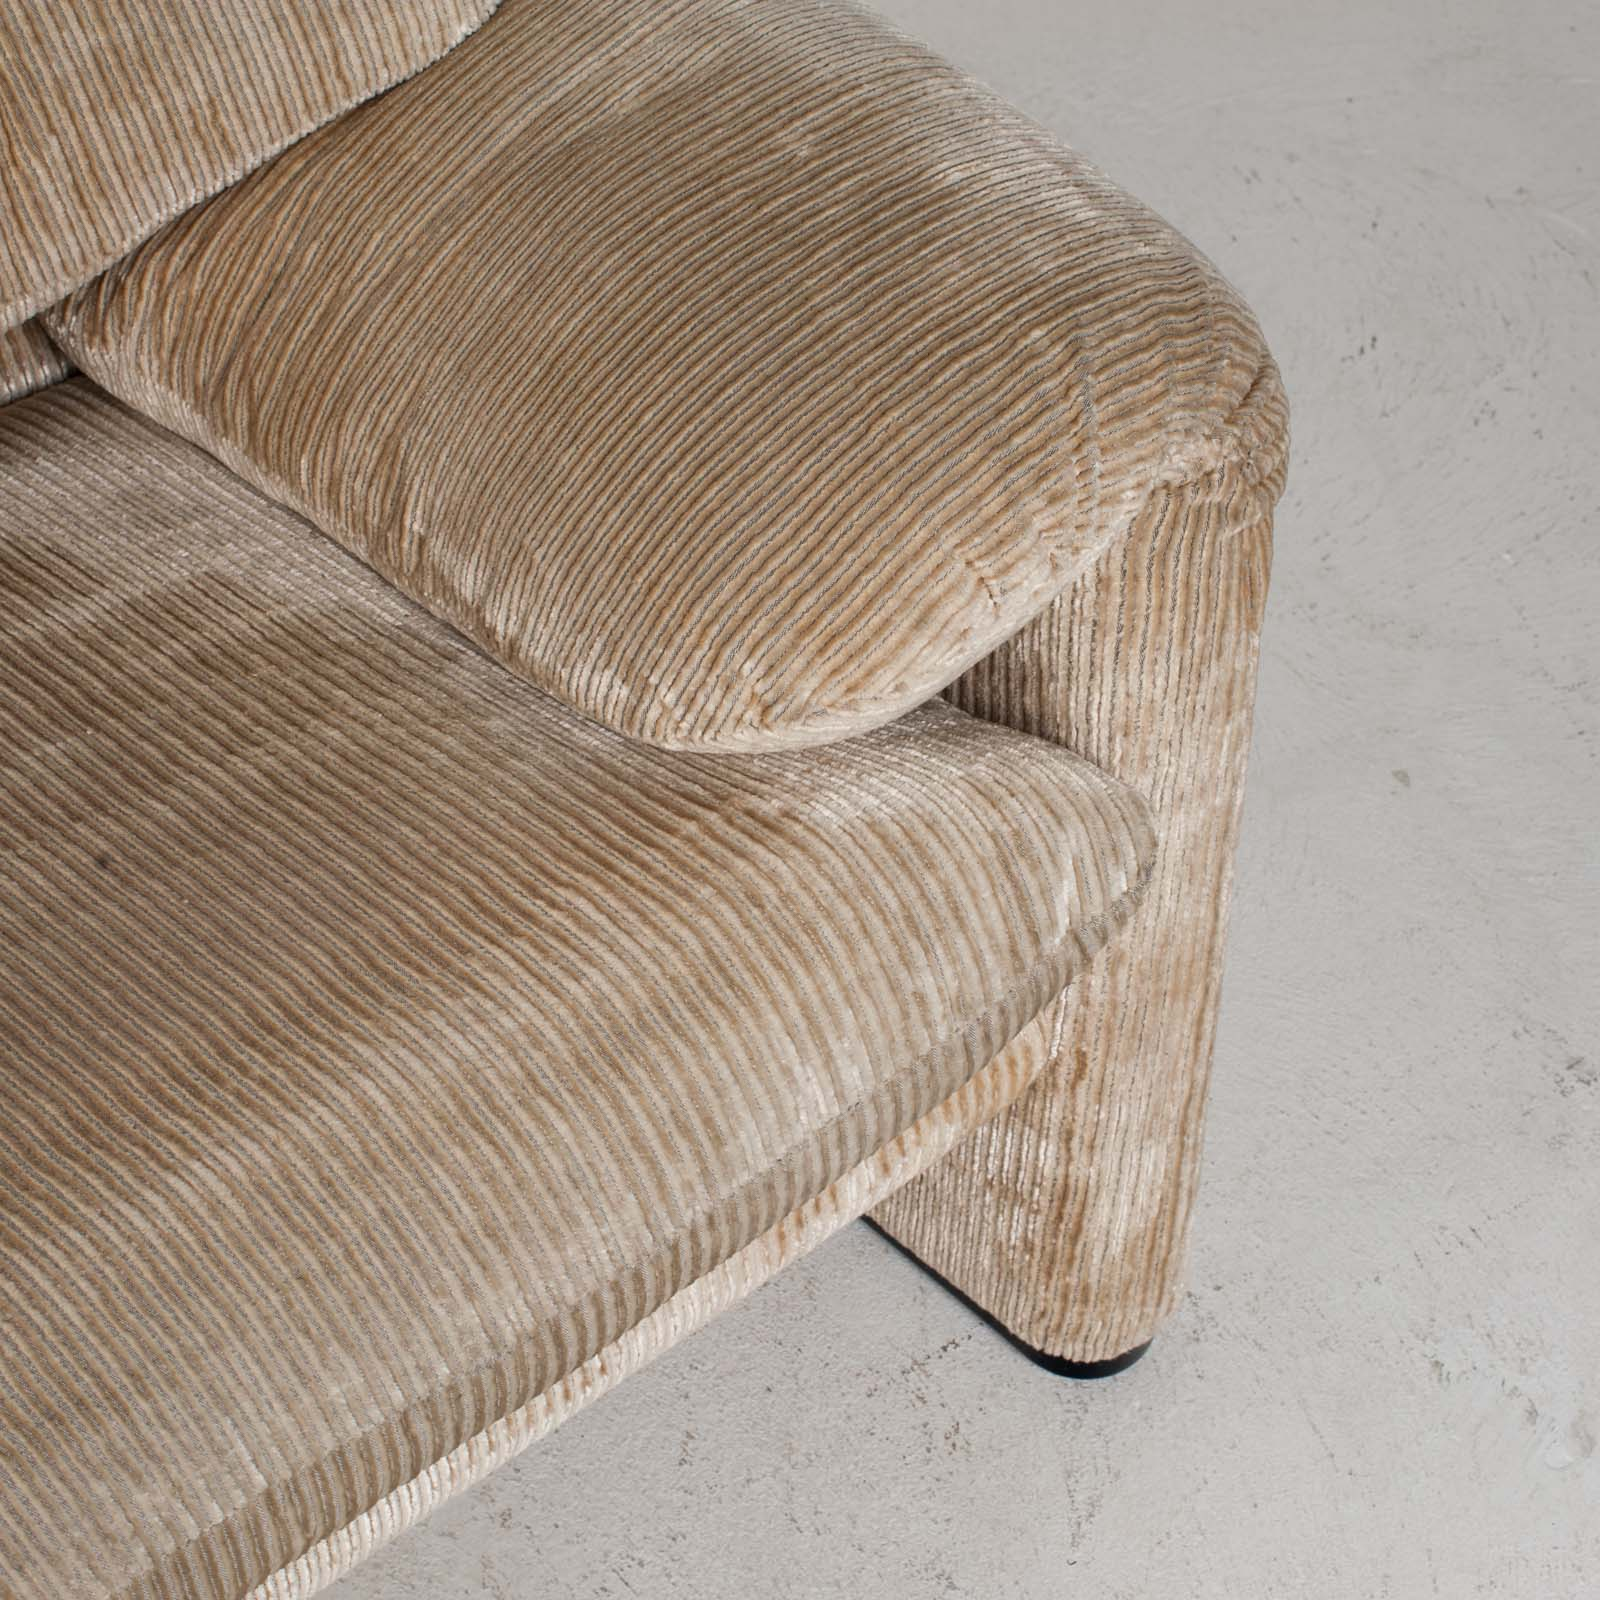 Maralunga 3 Seat Sofa By Vico Magistretti For Cassina In Original Upholstery 1970s Italy 017